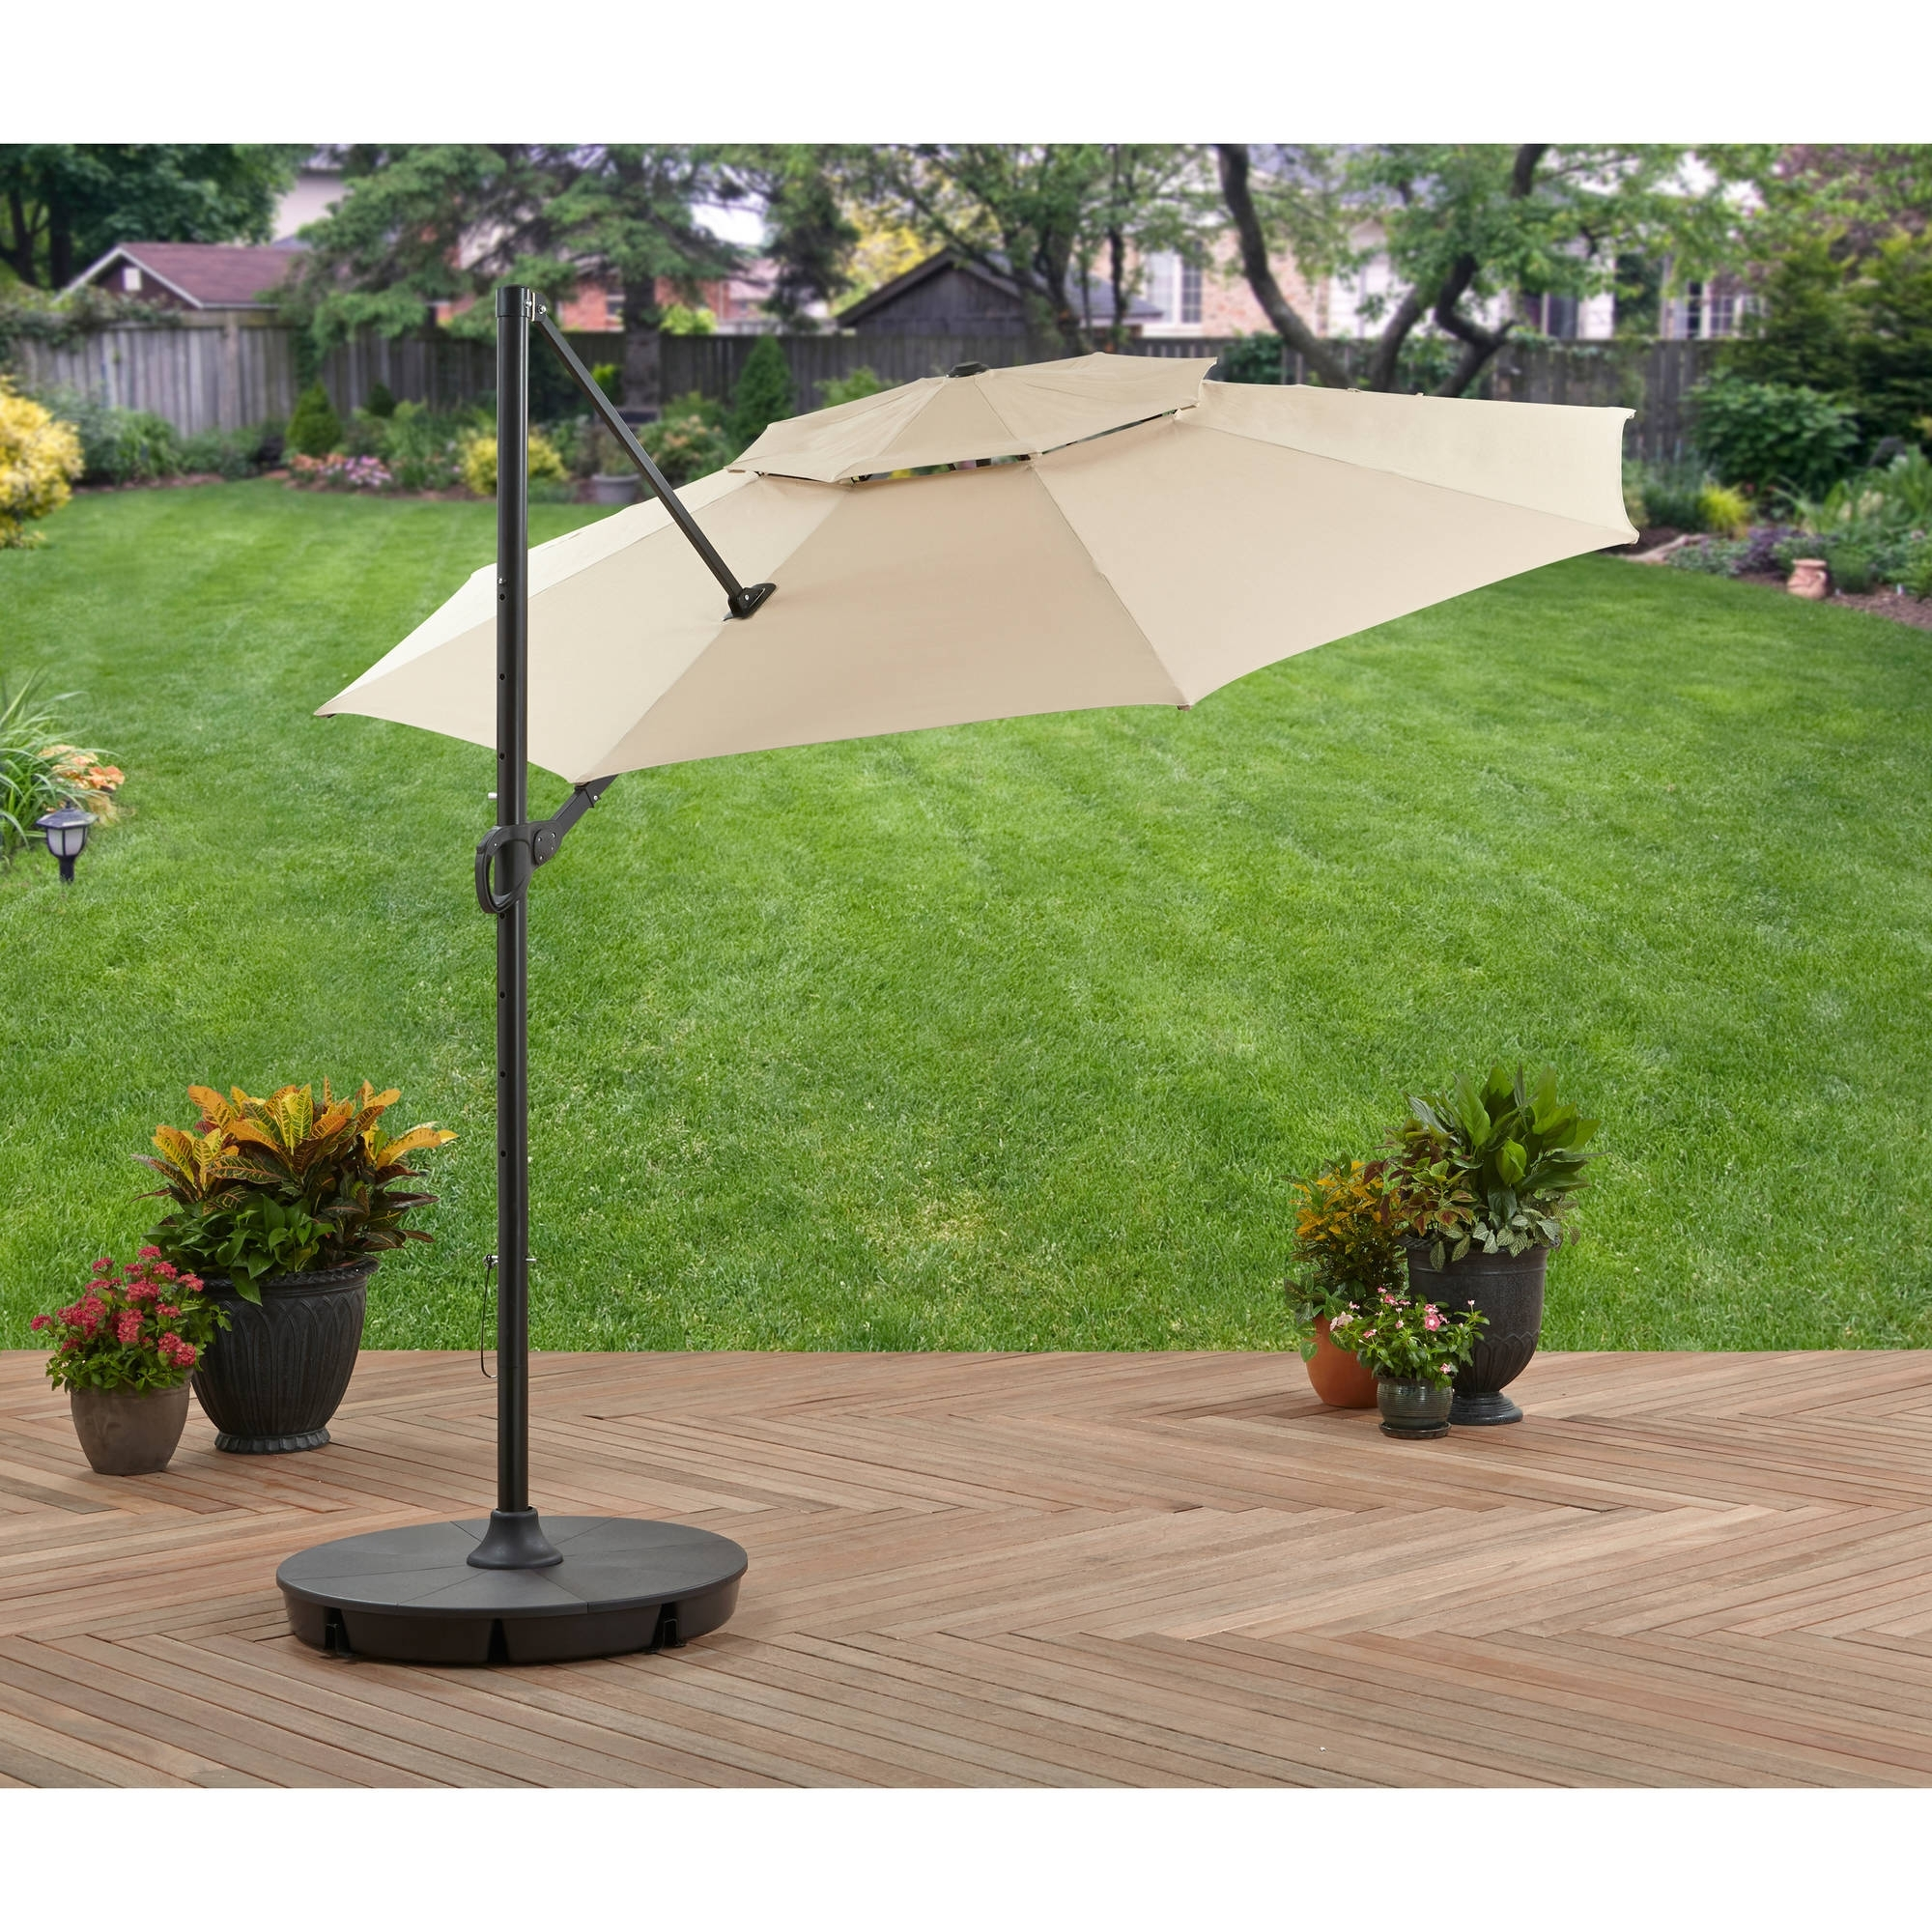 Well Liked Offset Patio Umbrellas With Base With Regard To Better Homes And Gardens 11' Offset Umbrella With Base, Tan (View 20 of 20)